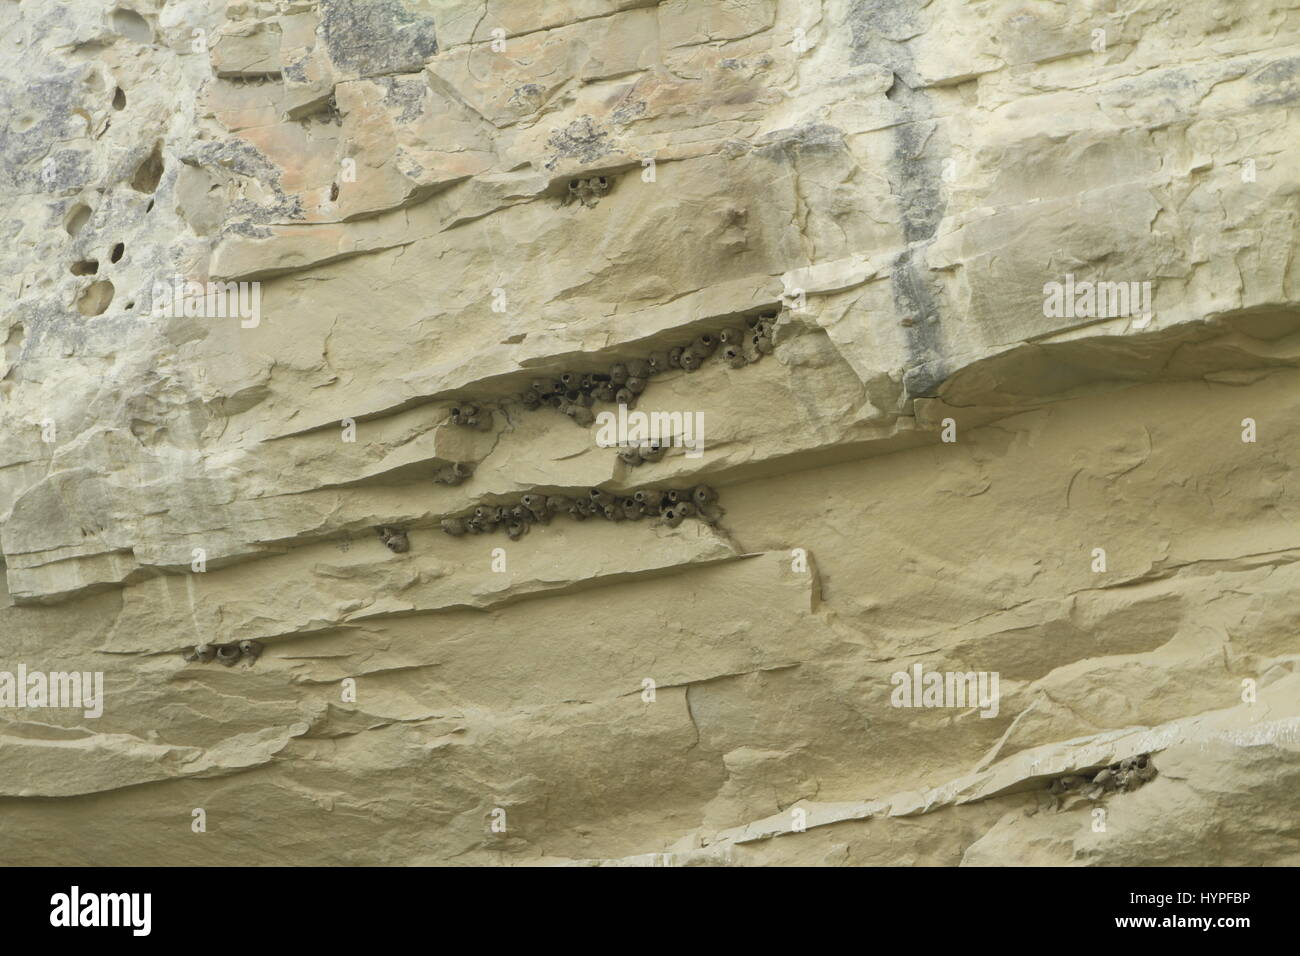 Cliff Swallow nests, Missouri River Breaks National Monument, Montana, USA - Stock Image